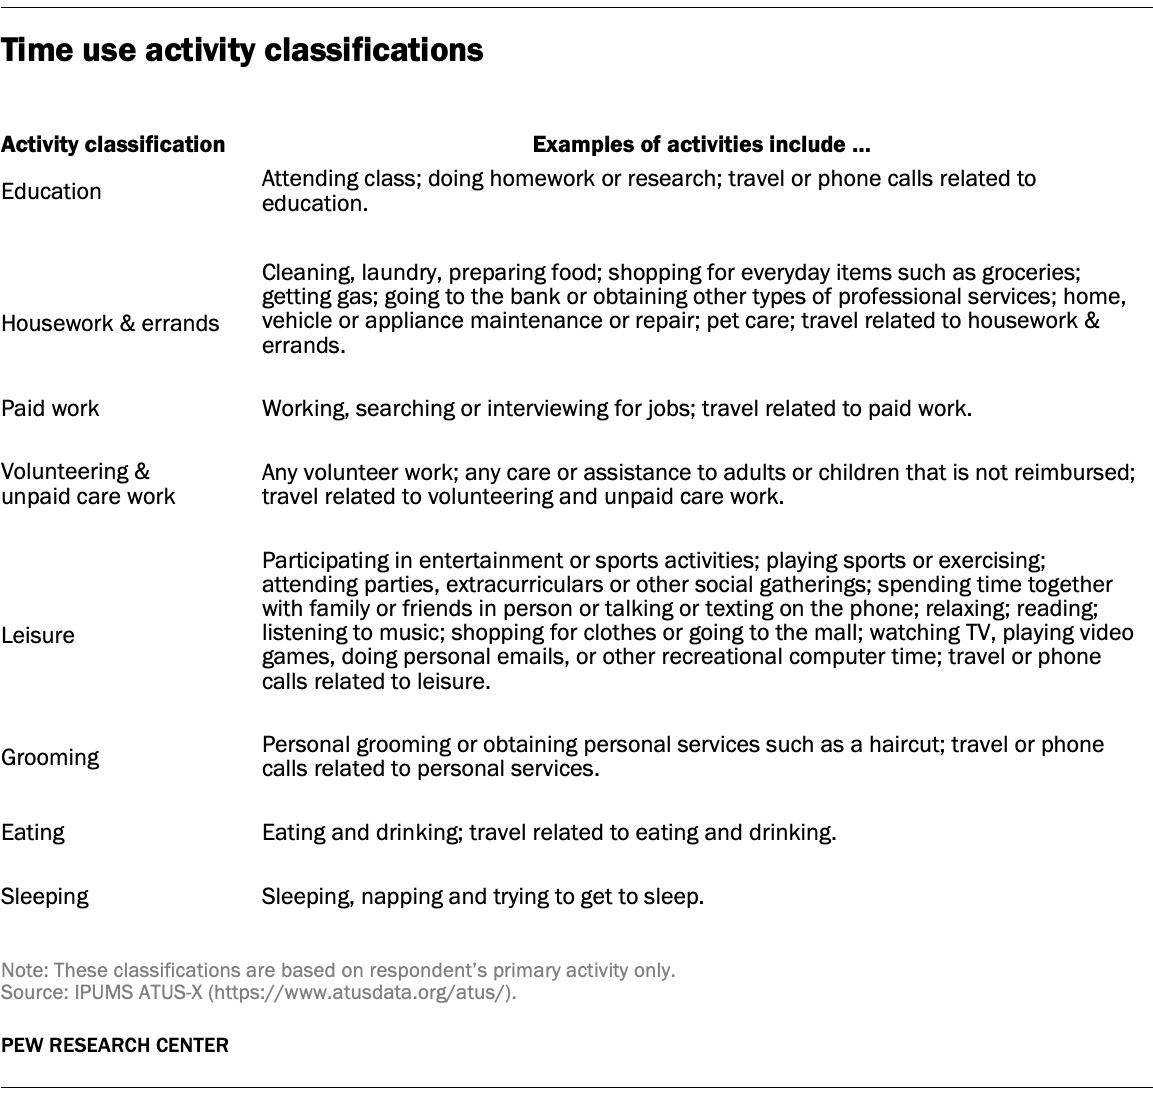 Time use activity classifications